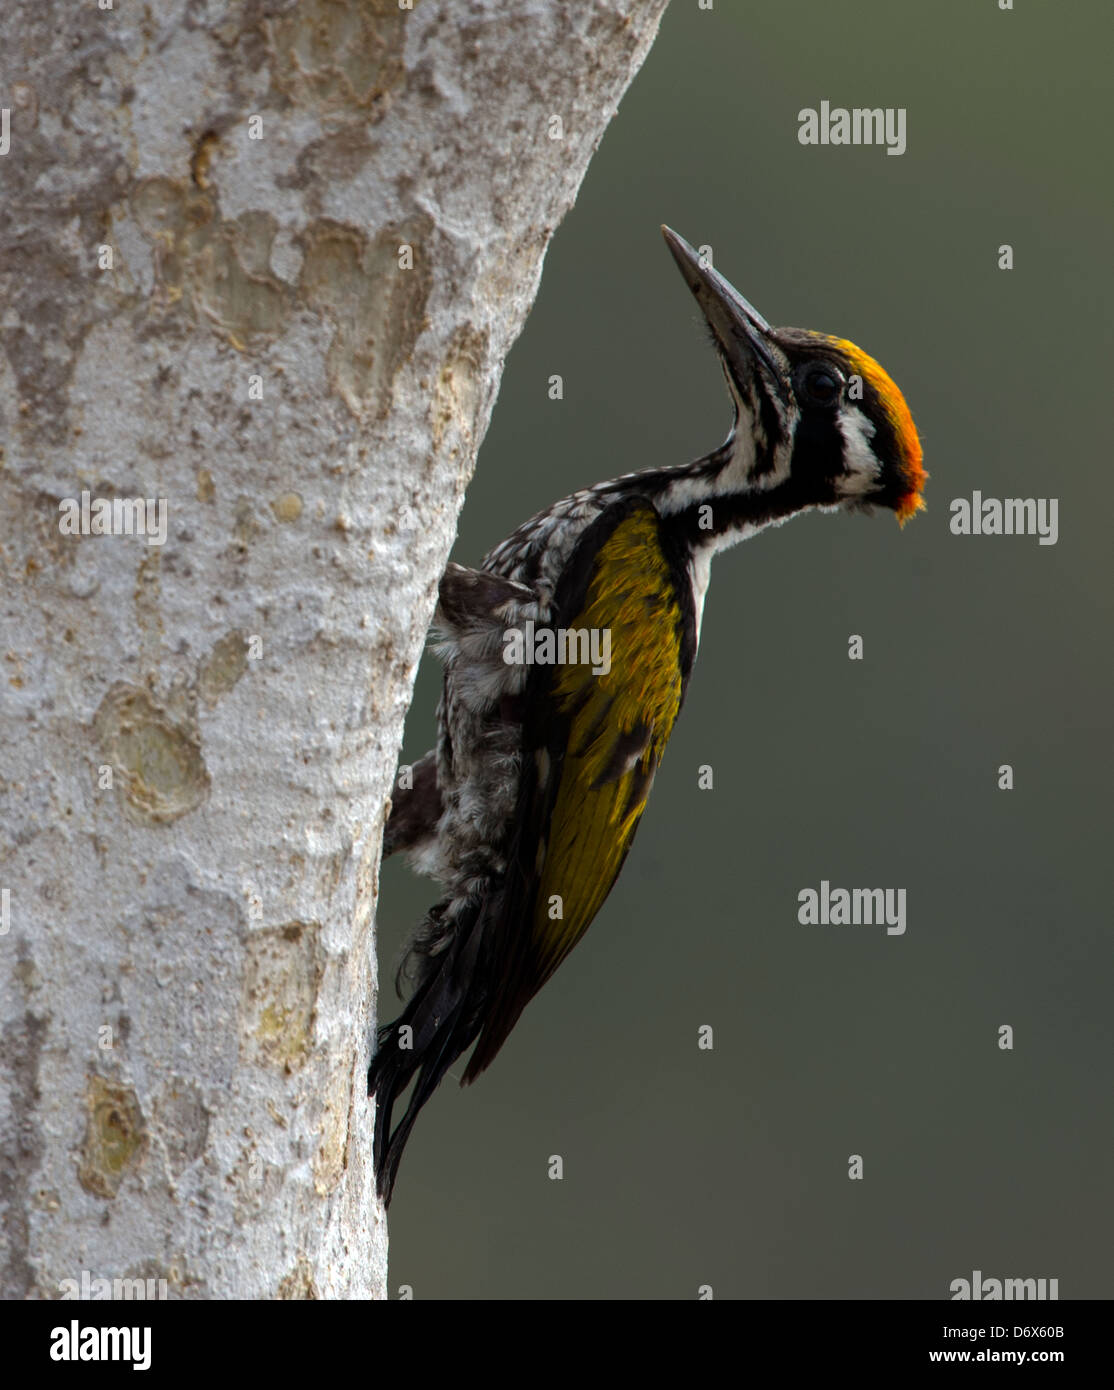 White-naped Woodpecker  climbing up a tree trunk - Stock Image